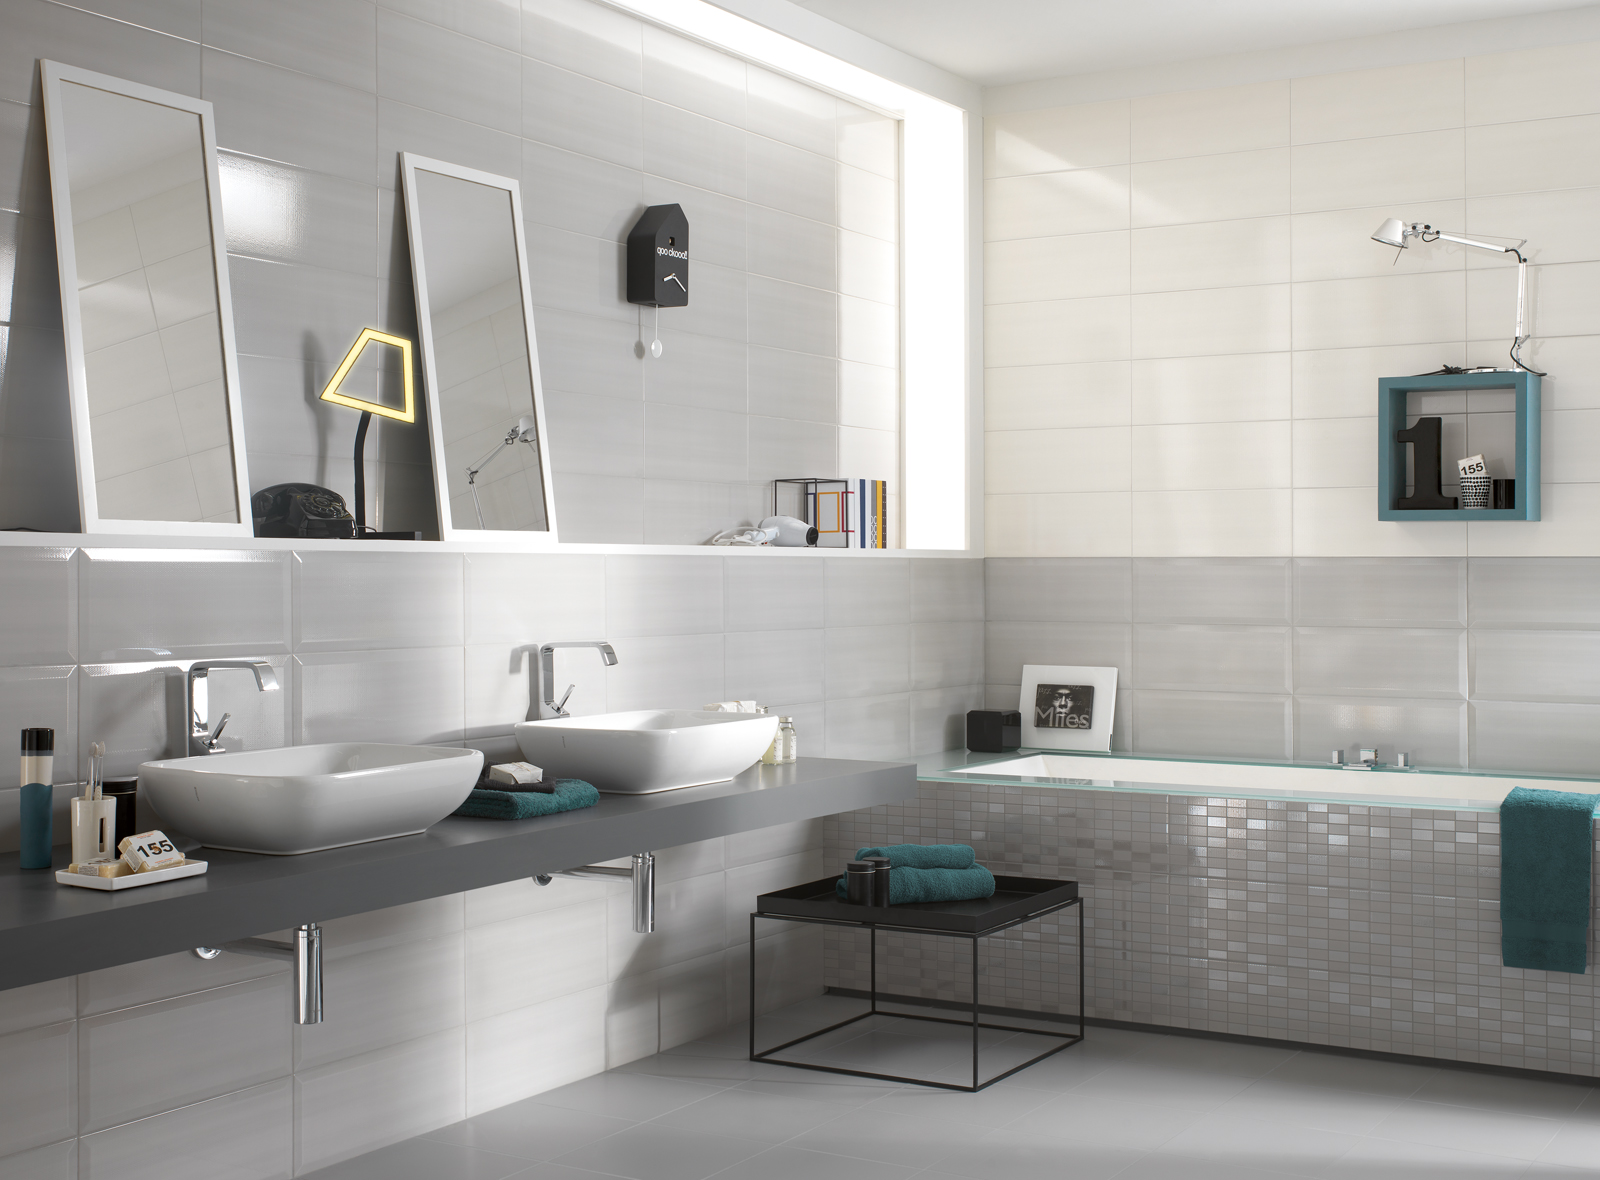 nuance ceramic bathroom covering marazzi. Black Bedroom Furniture Sets. Home Design Ideas